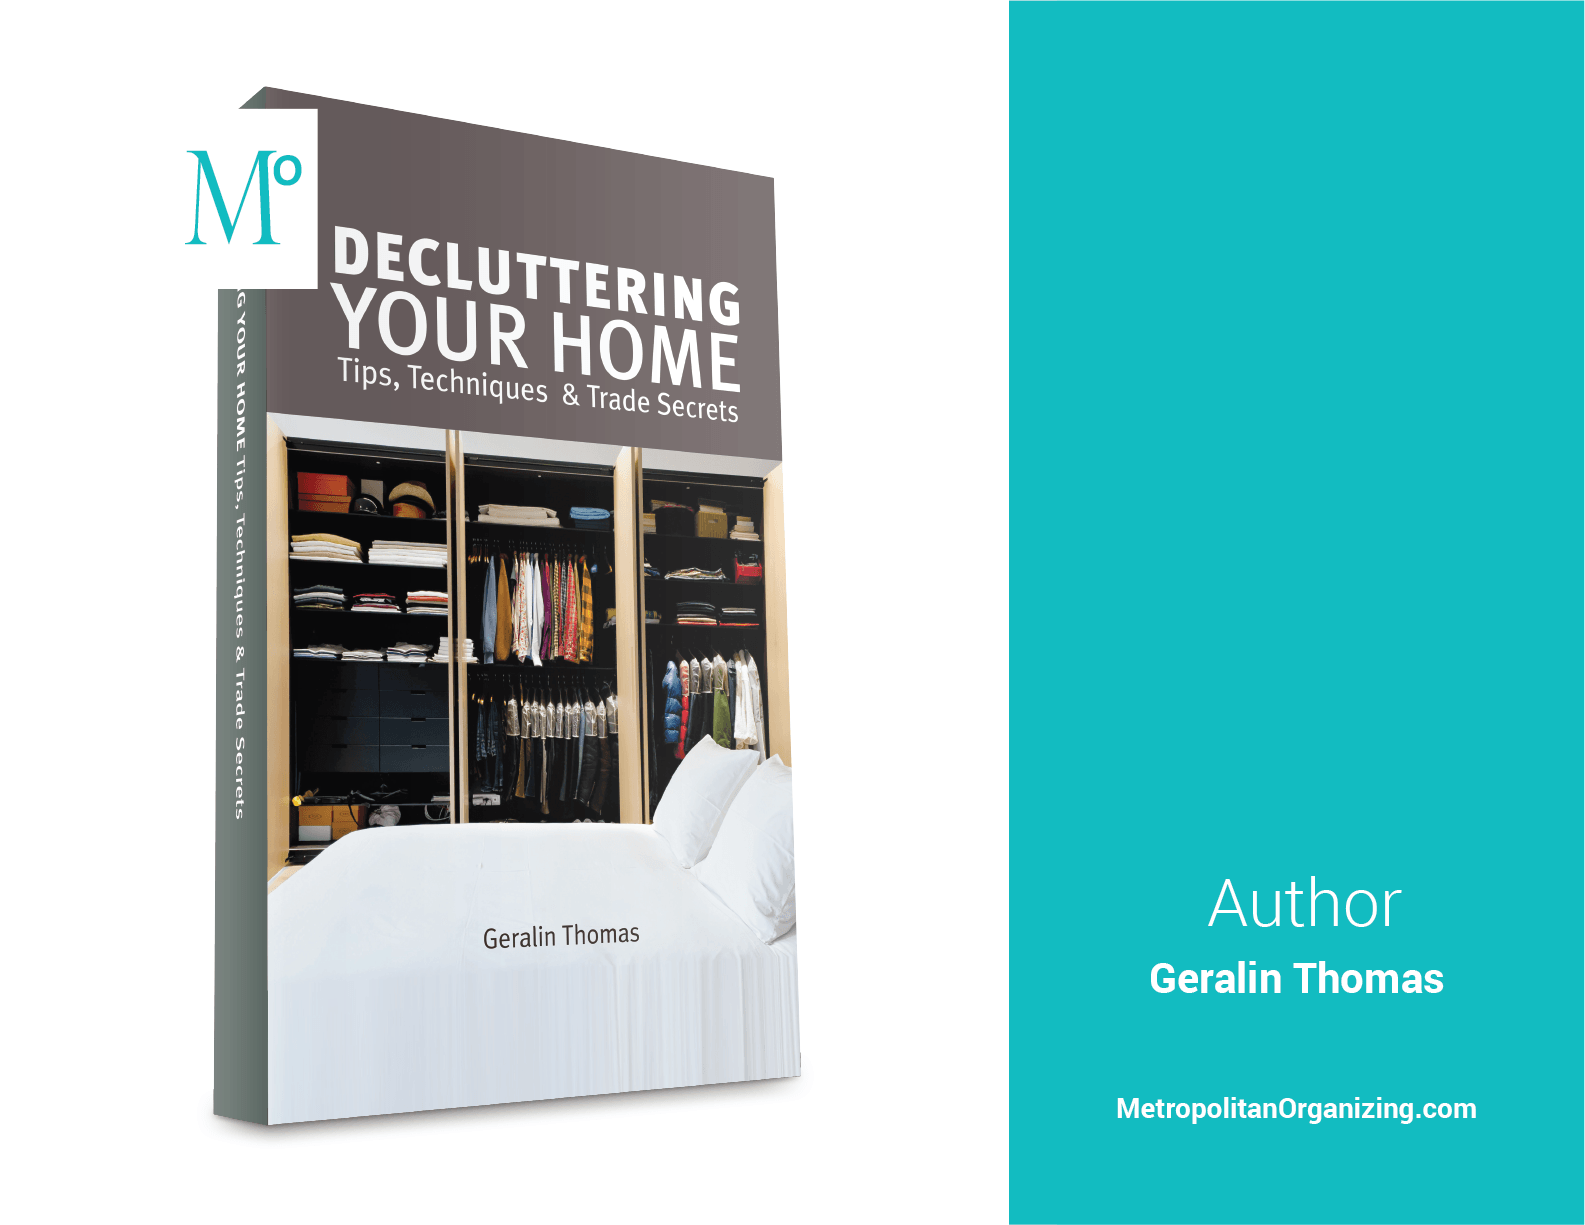 Decluttering Your Home - Details